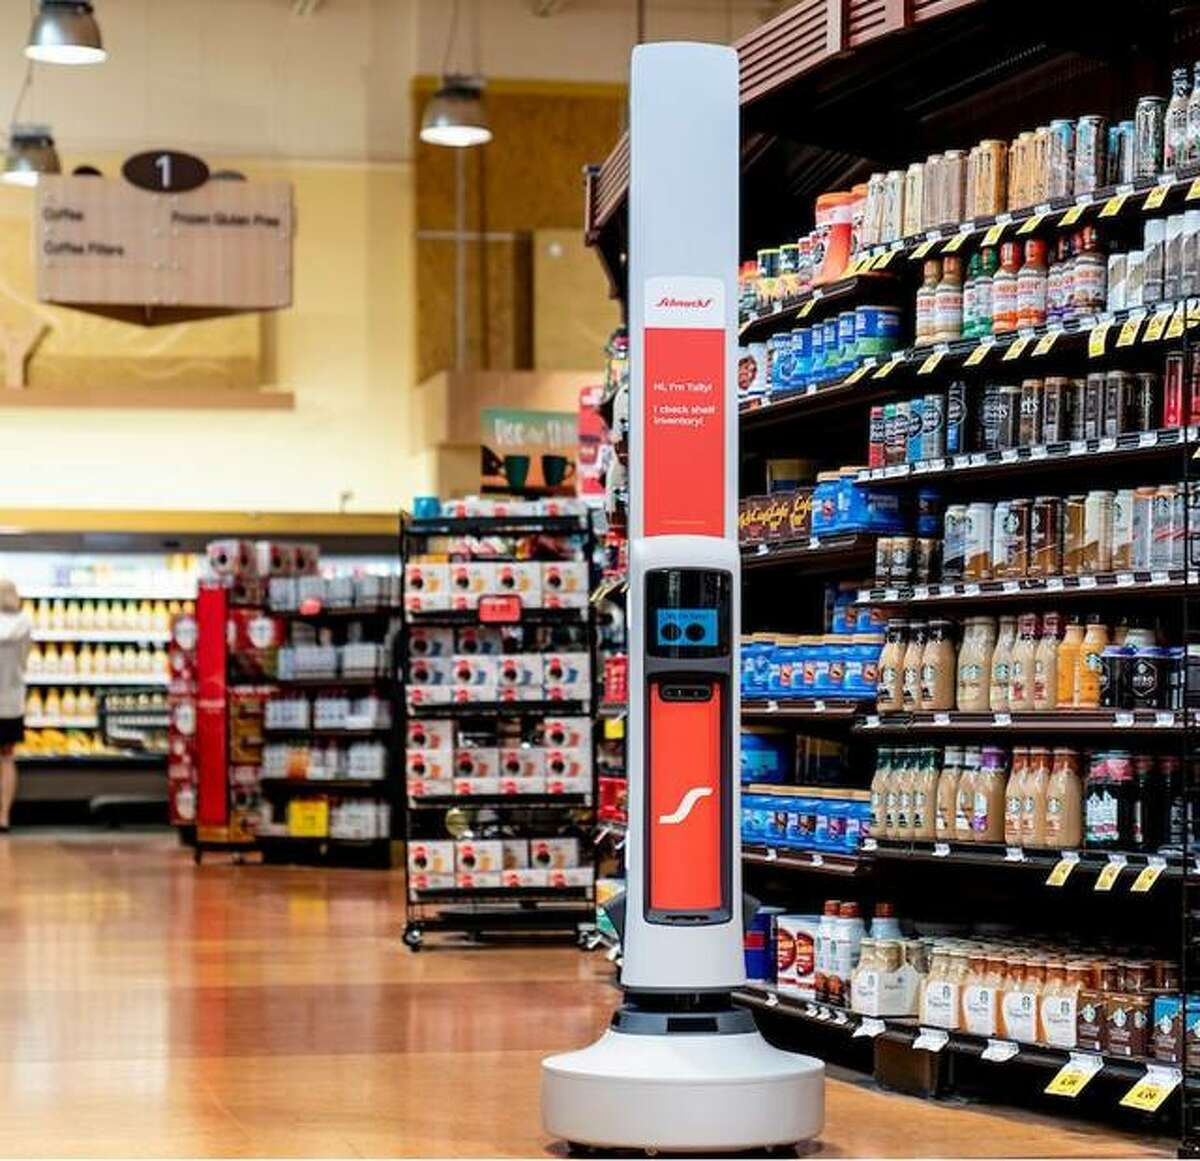 An expanded partnership with Simbe will bring Tally, a retail management robot used to track inventory, to all Schnucks stores.